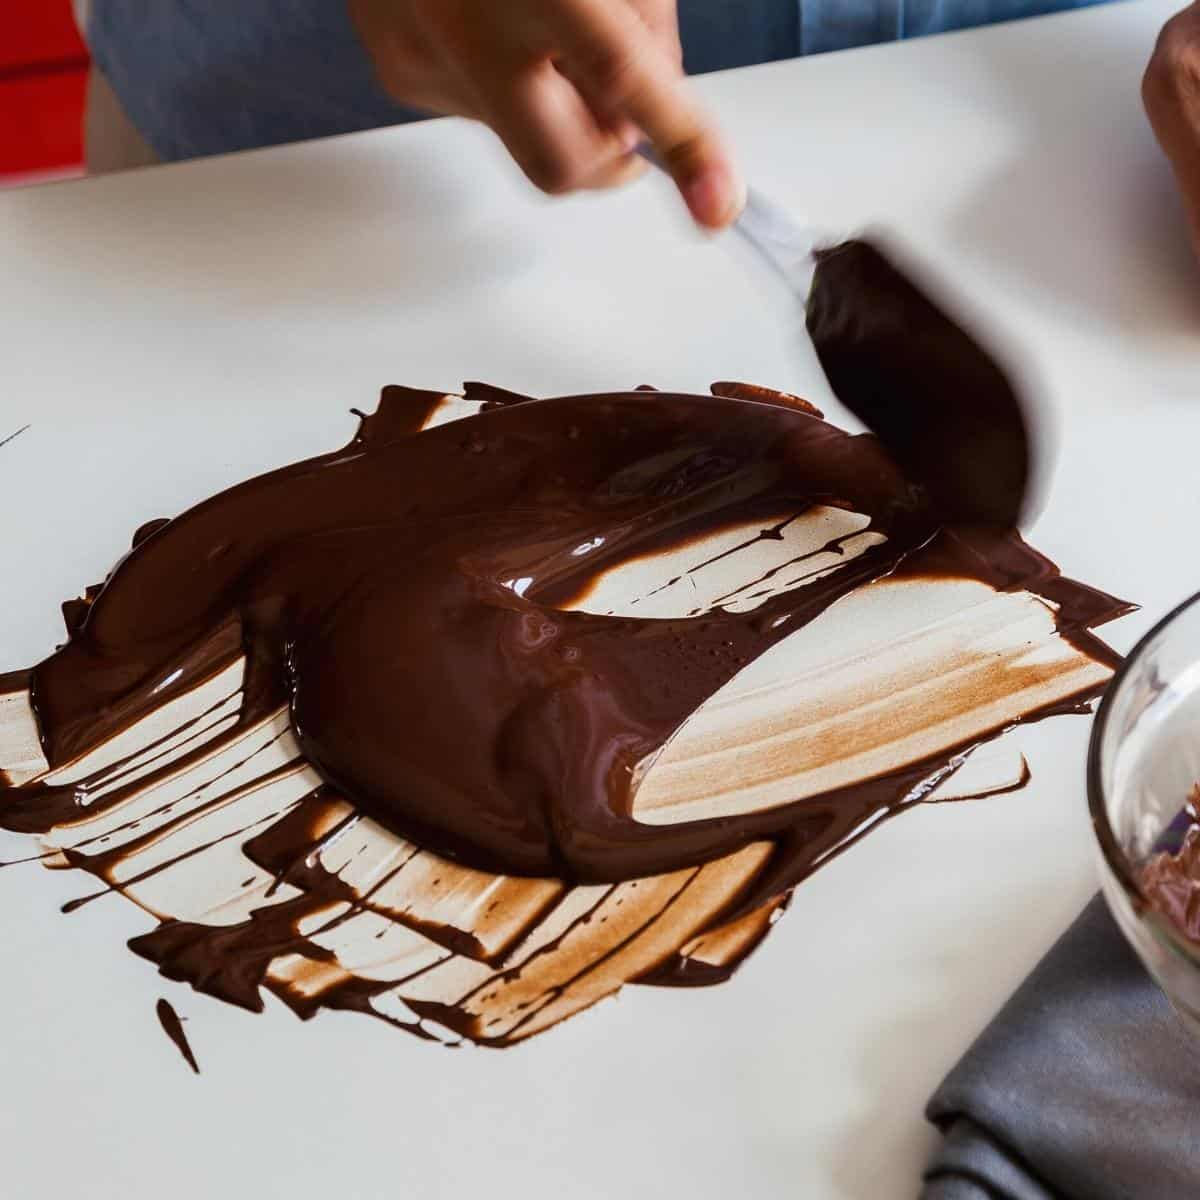 Tempering chocolate on the marble